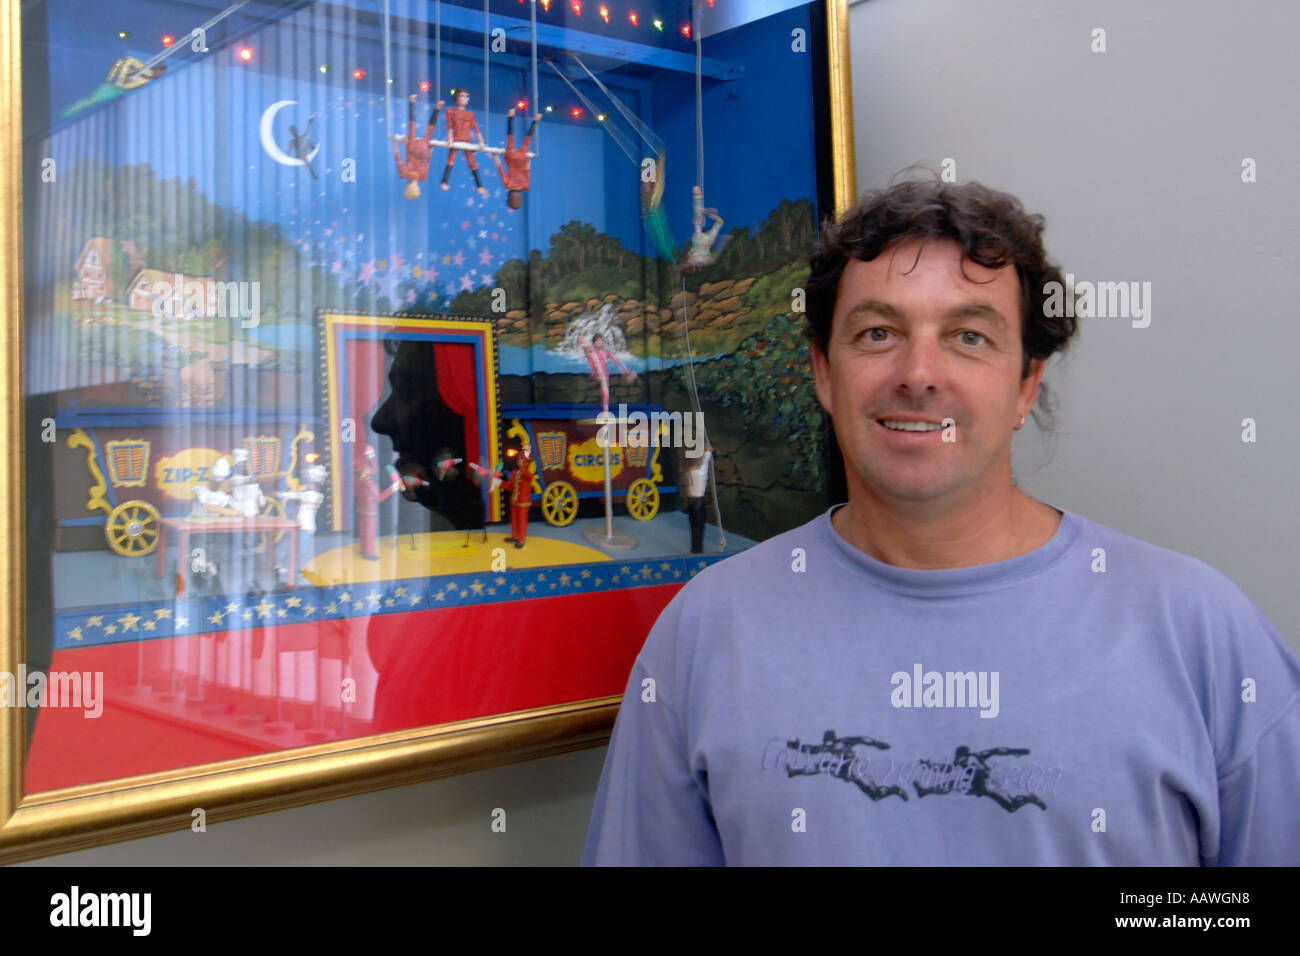 Brent van Rensburg, founder of the Zip Zap Circus School in Cape Town standing next to a miniature circus display. - Stock Image